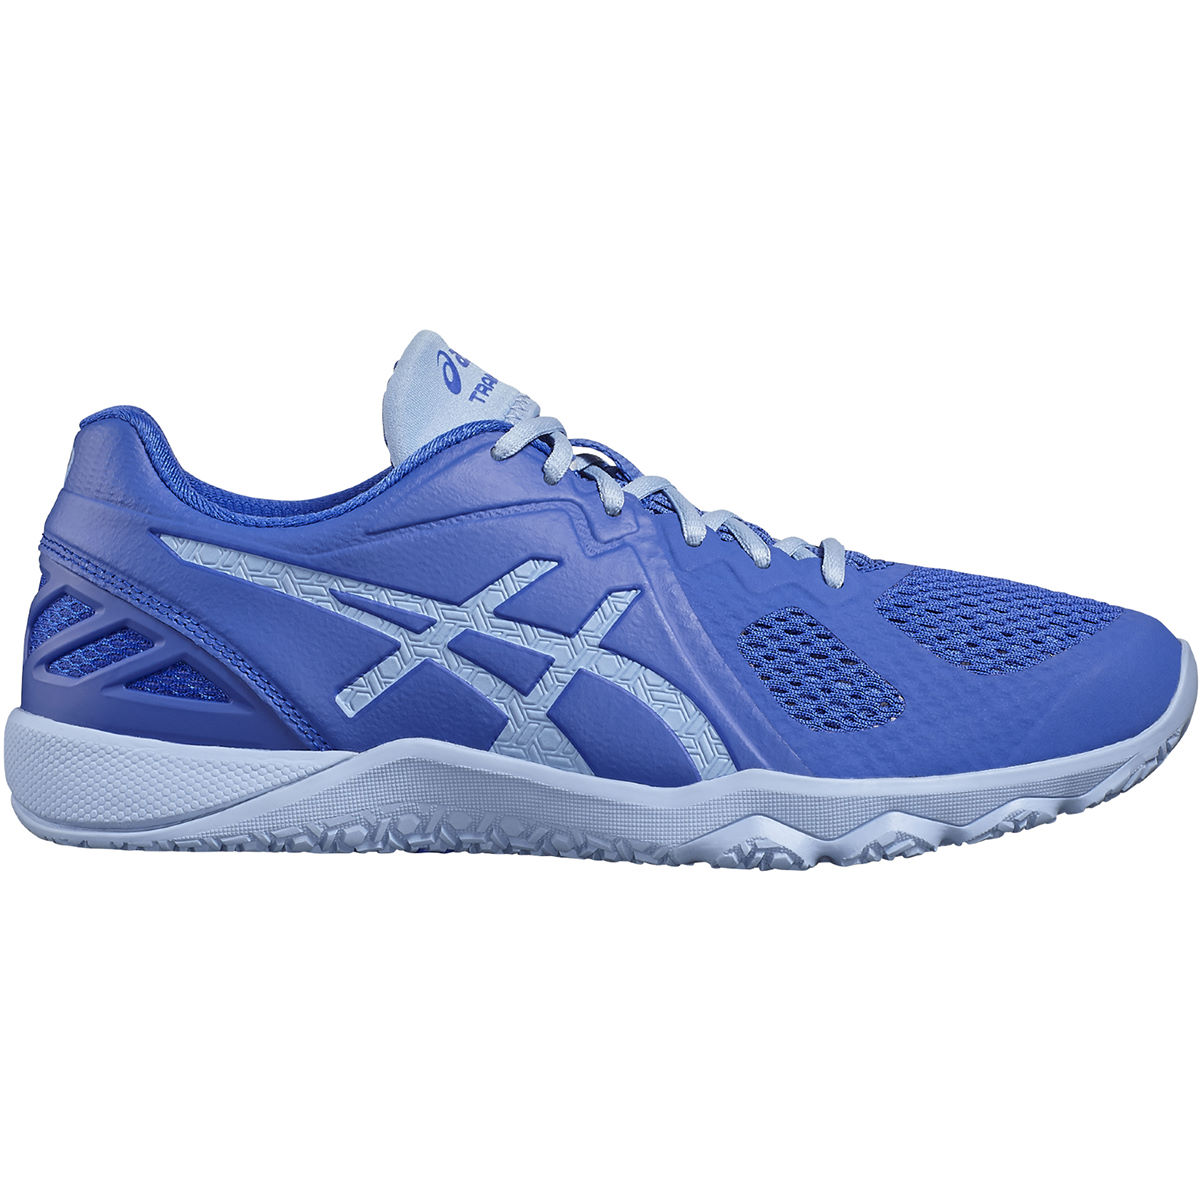 ASICS Asics womens Conviction X Shoes   Fitness Shoes